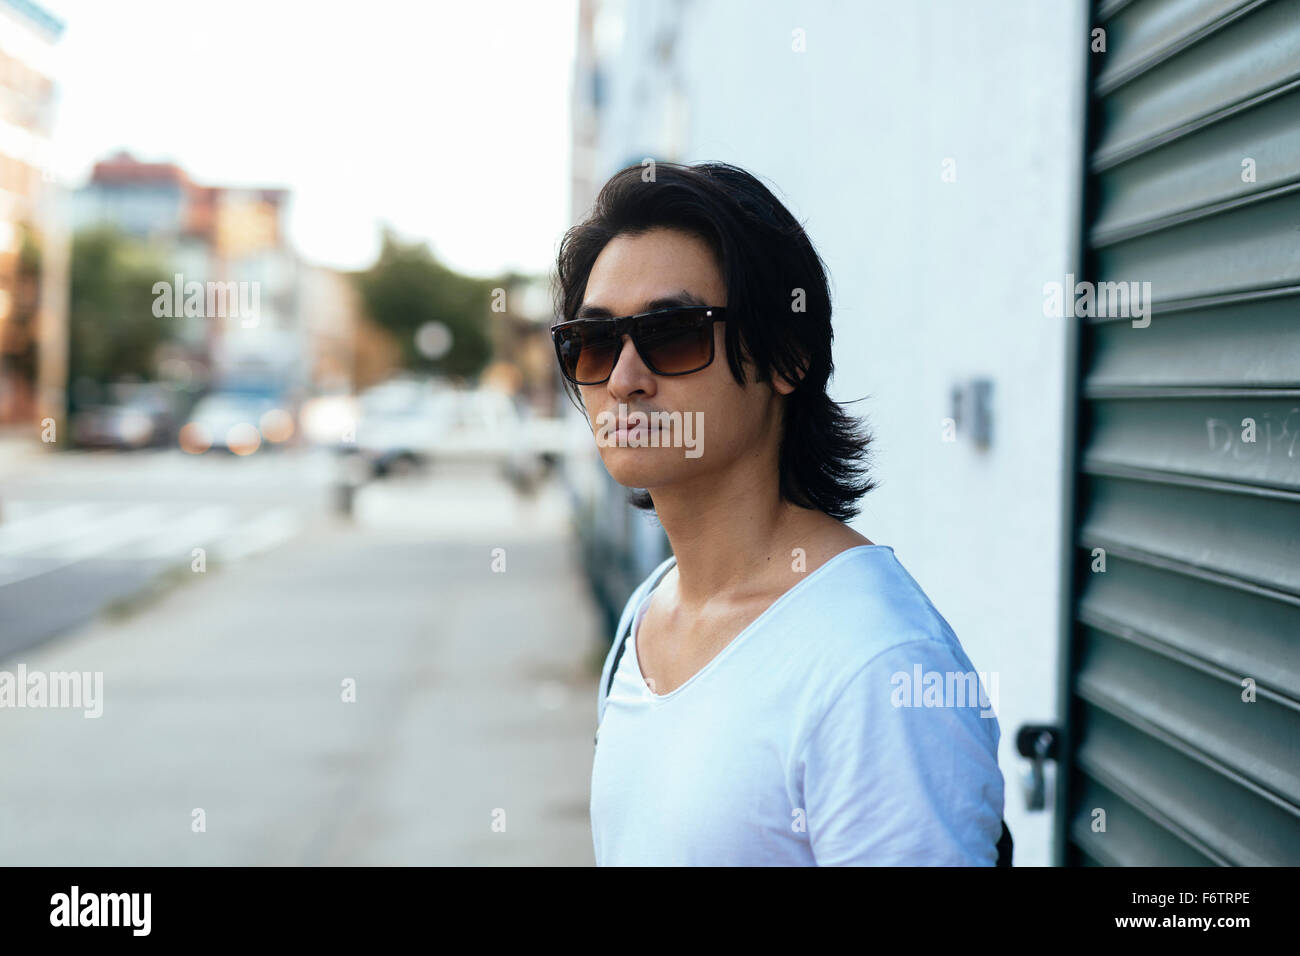 USA, New York City, man standing in front of a shutter - Stock Image